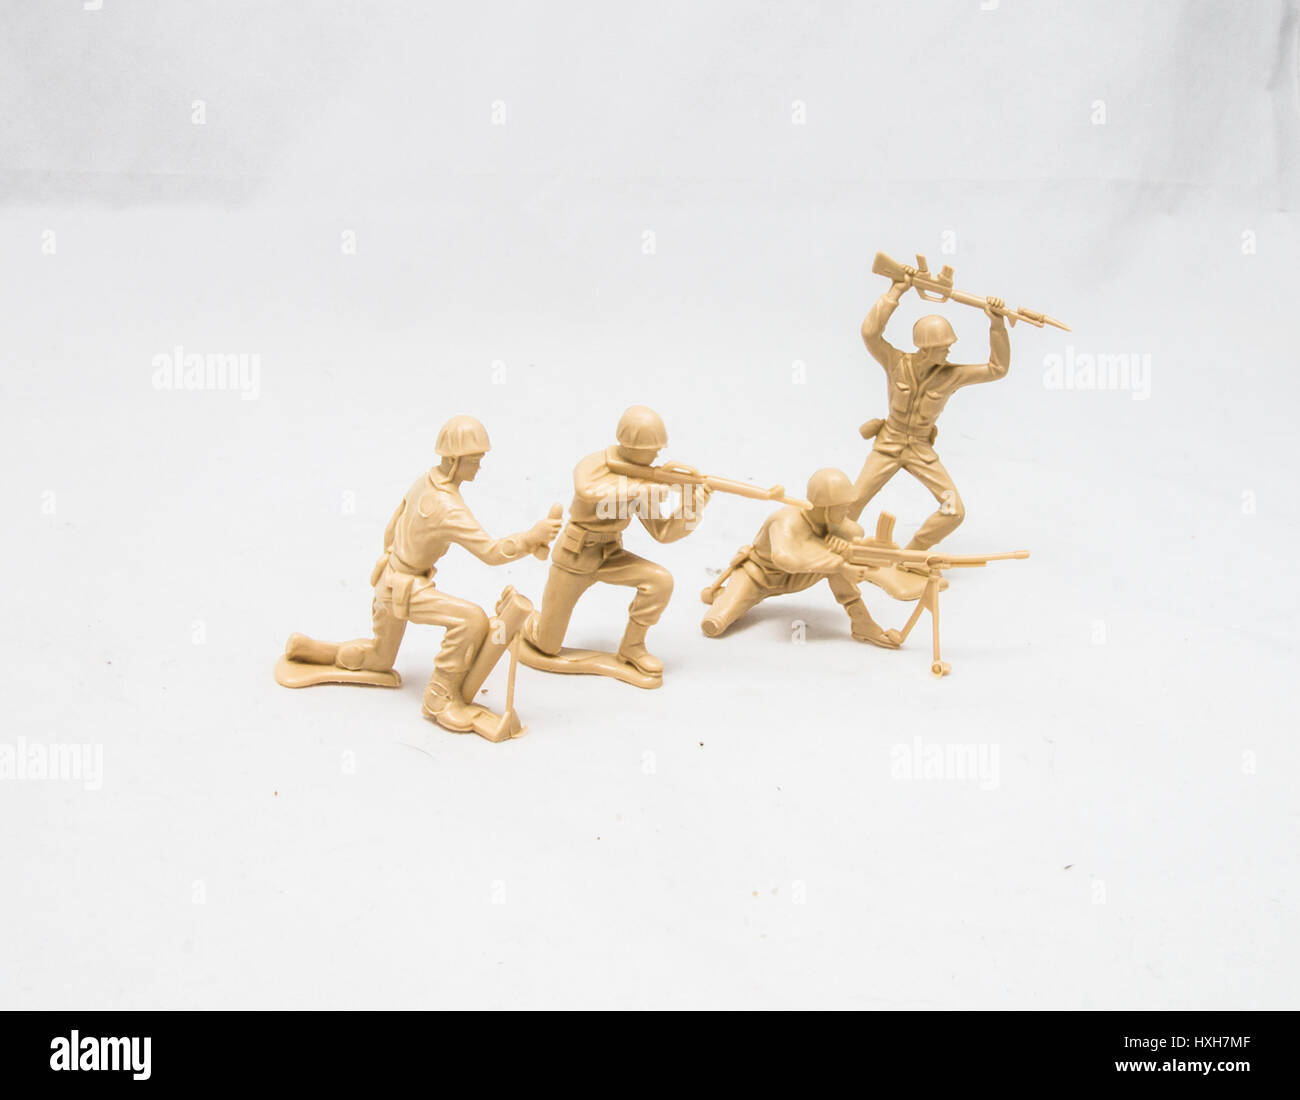 Plastic Tan soldiers in a line - Stock Image